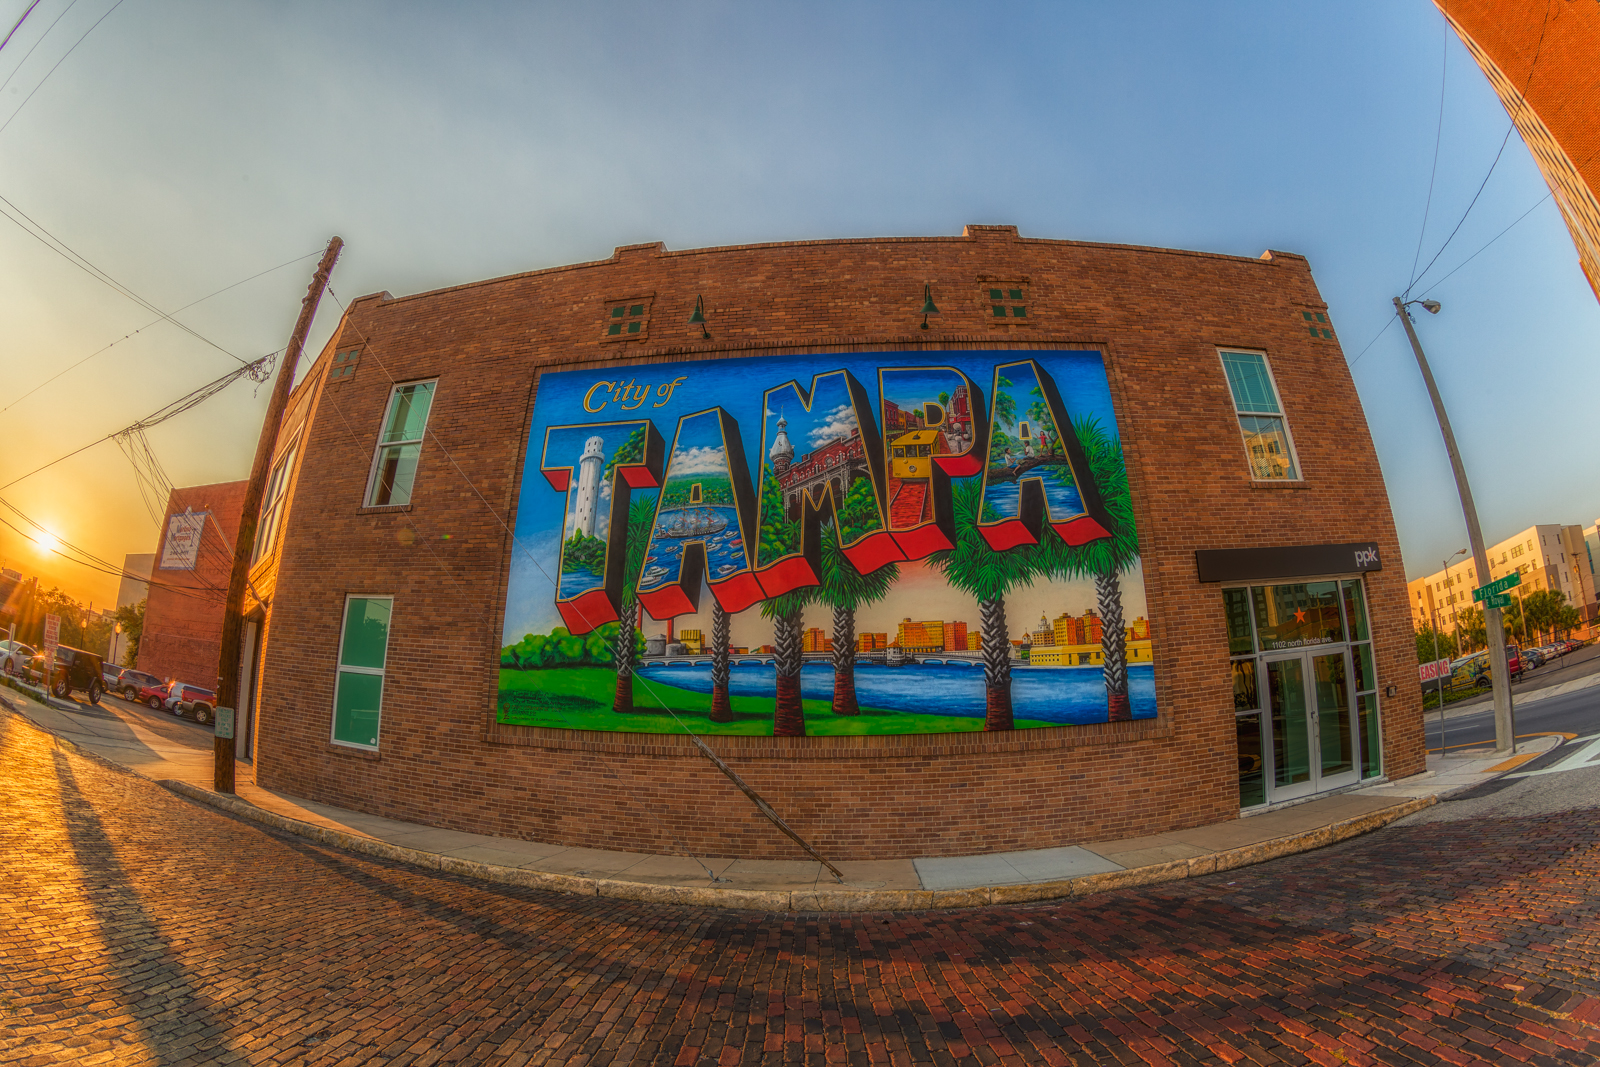 Tampa Postcard Mural by Carl Cowden III